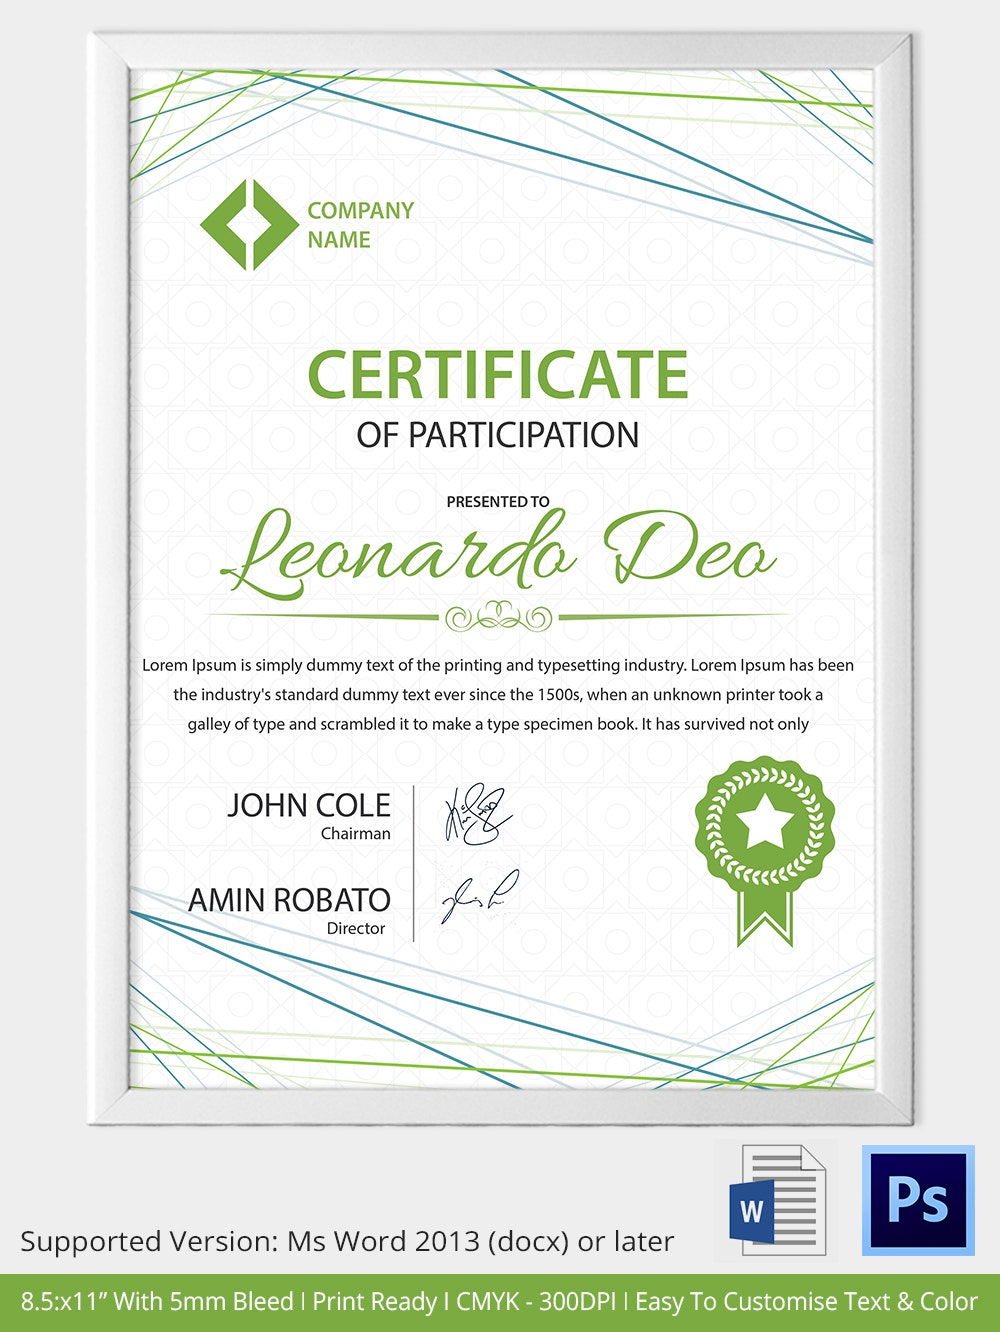 33 psd certificate templates free psd format download for Certificate design template